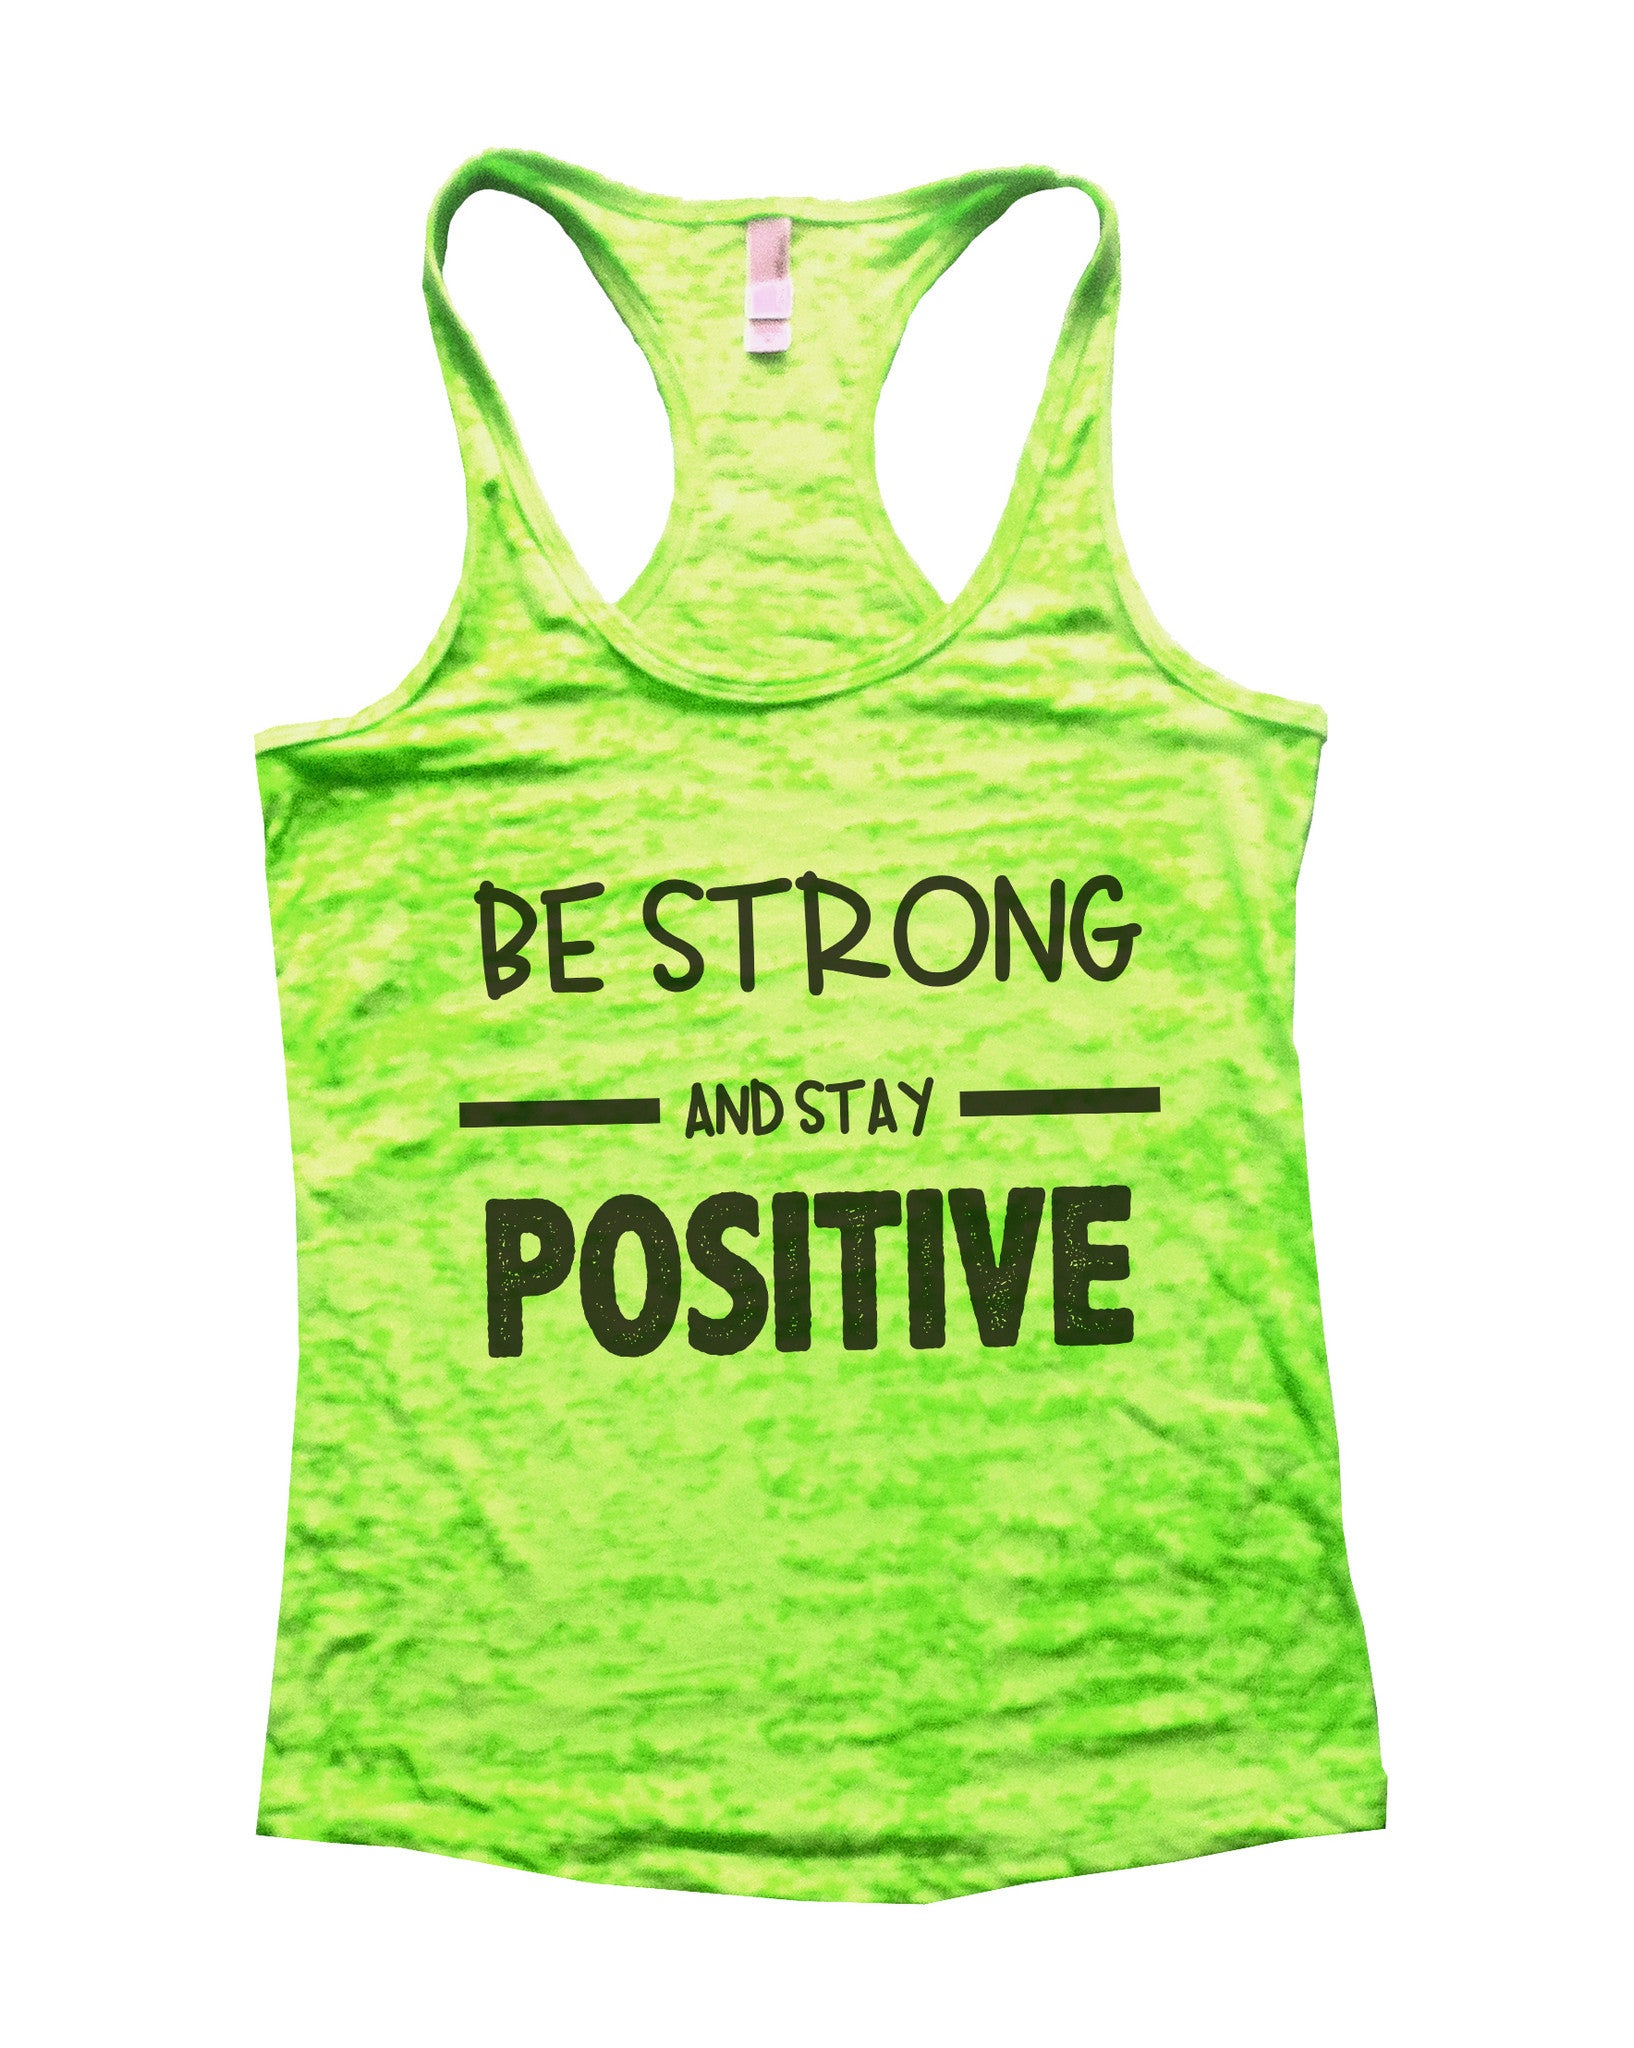 Be Strong And Stay Positive Womens Burnout Tank Top By BurnoutTankTops.com - 657 - Funny Shirts Tank Tops Burnouts and Triblends  - 2